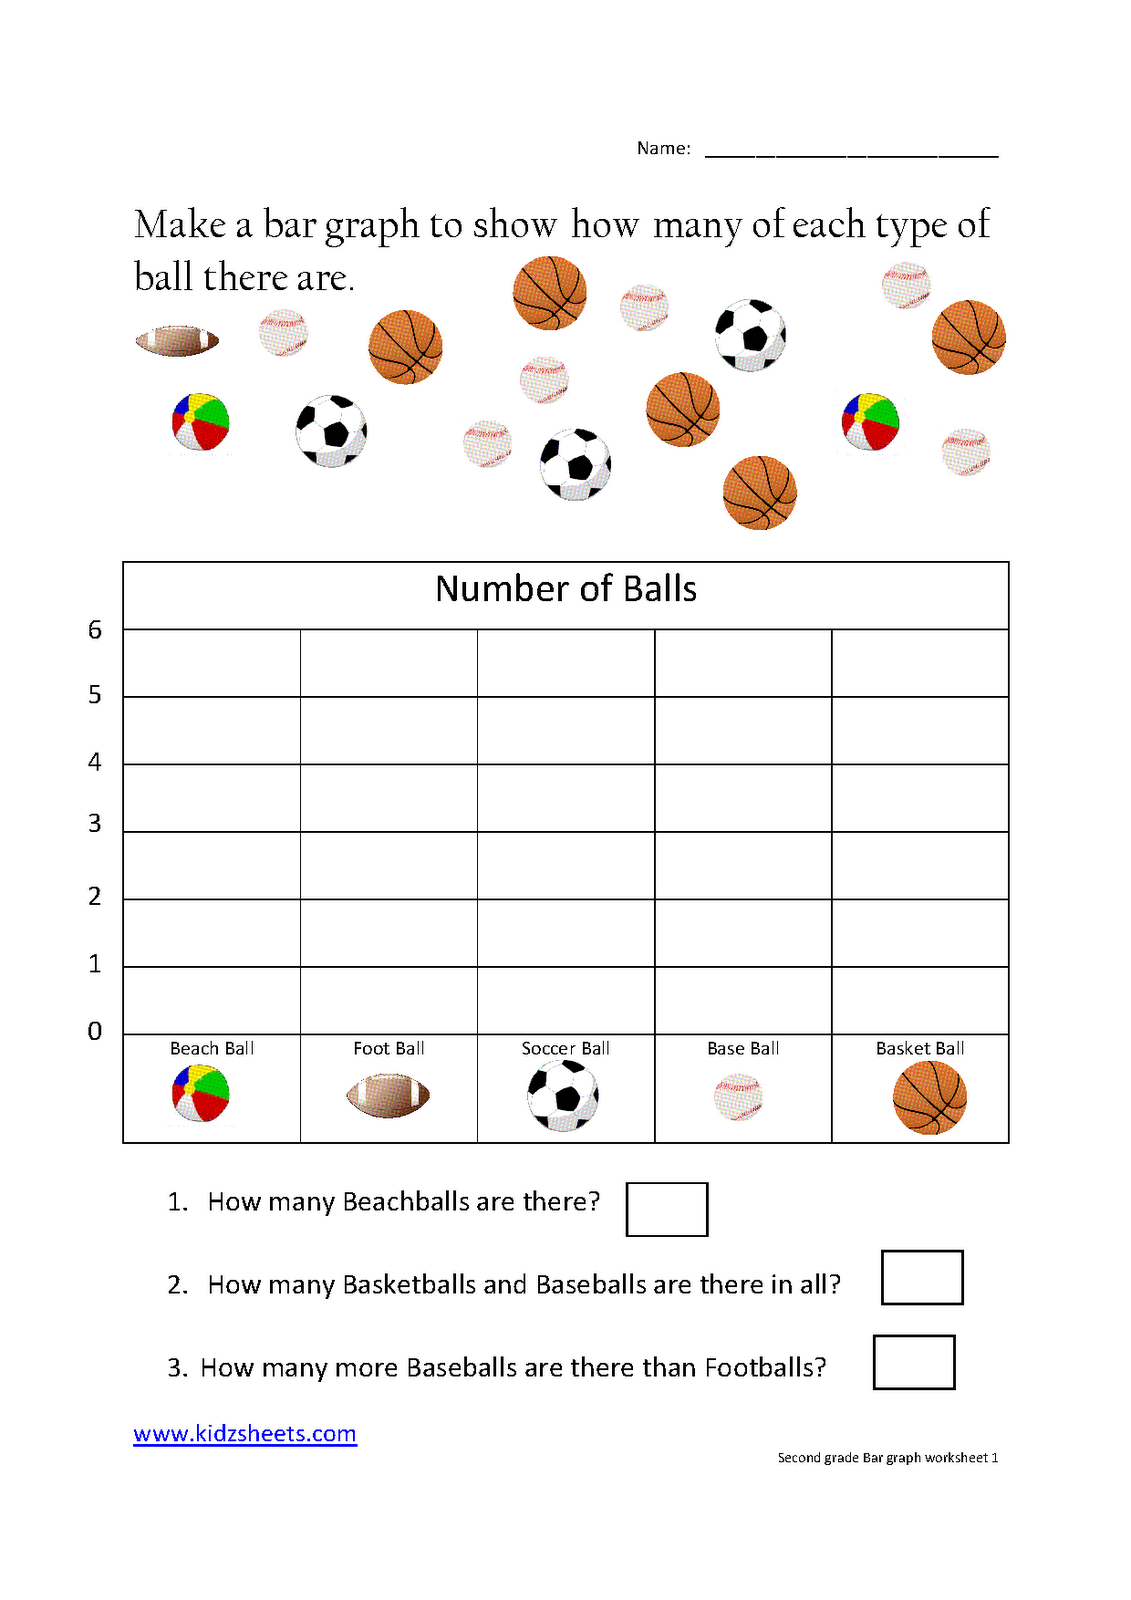 Worksheet Kindergarten Graphing first grade math unit 16 graphing and data analysis kidz worksheets second bar graph worksheet1